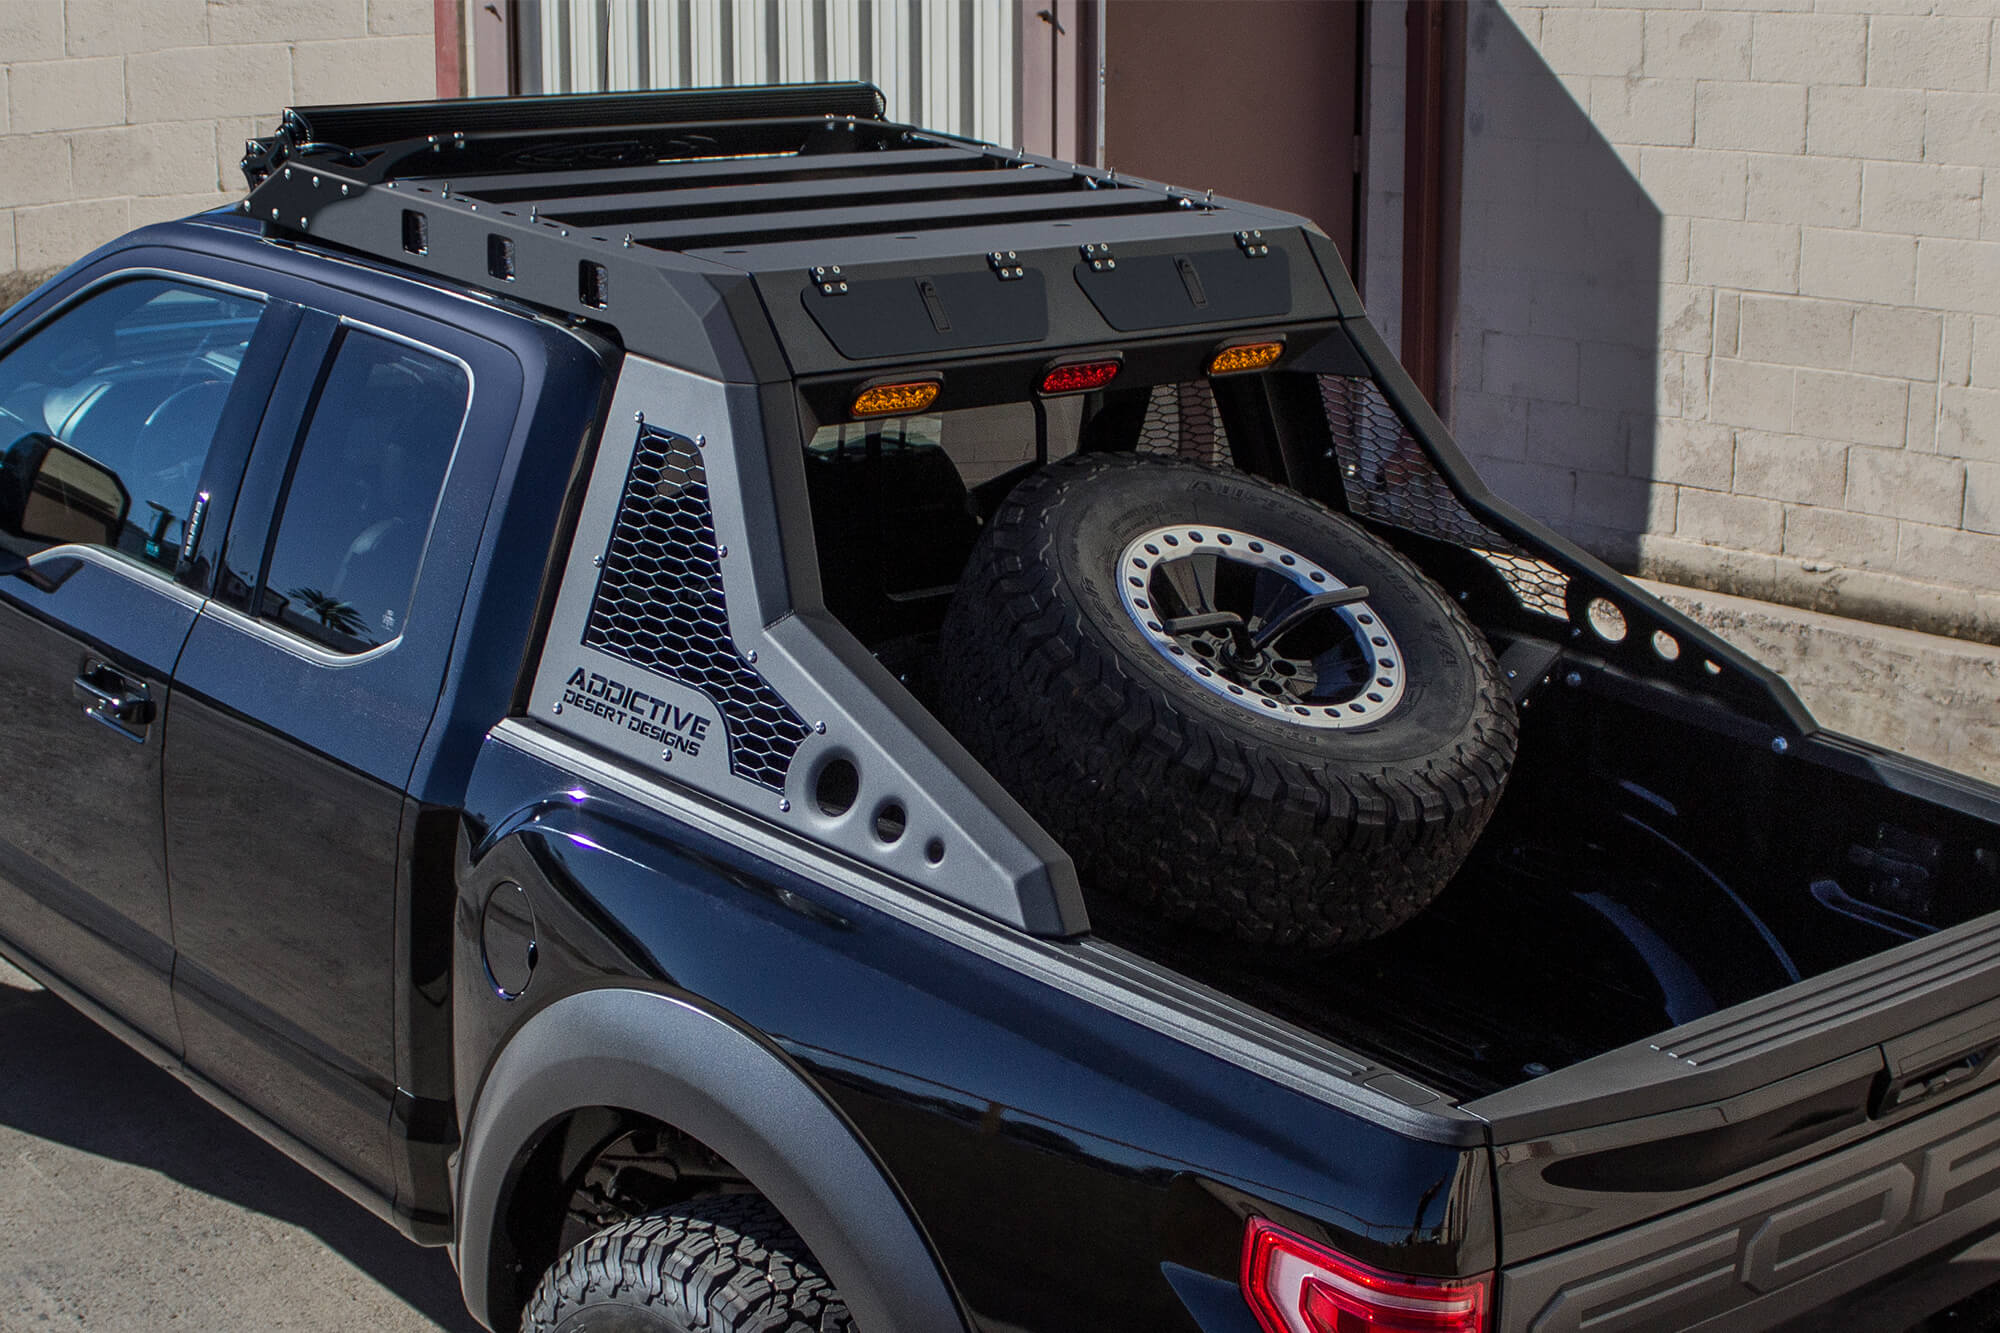 2017 Ford Raptor Honeybadger Chase Rack Tire Carrier Off